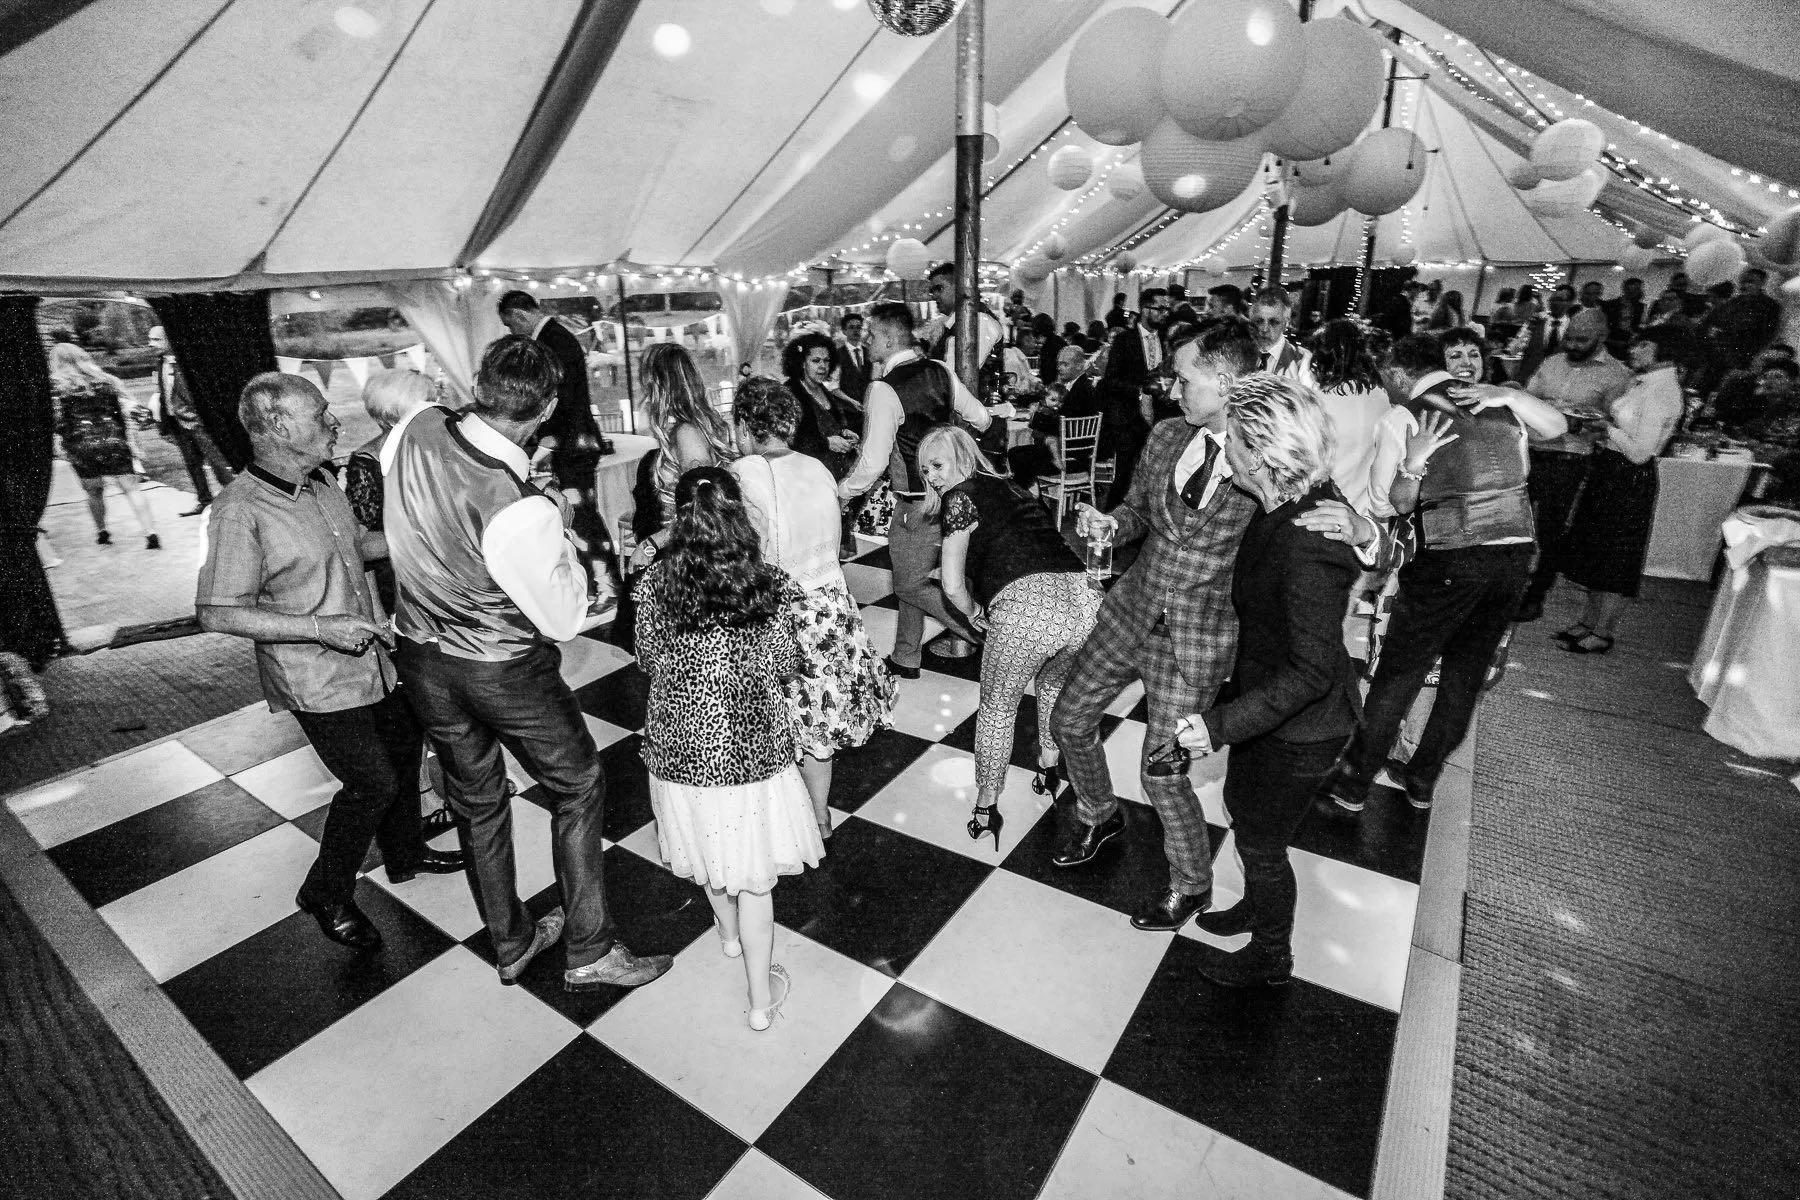 Fun on the dance floor at a same-sex marriage wedding reception